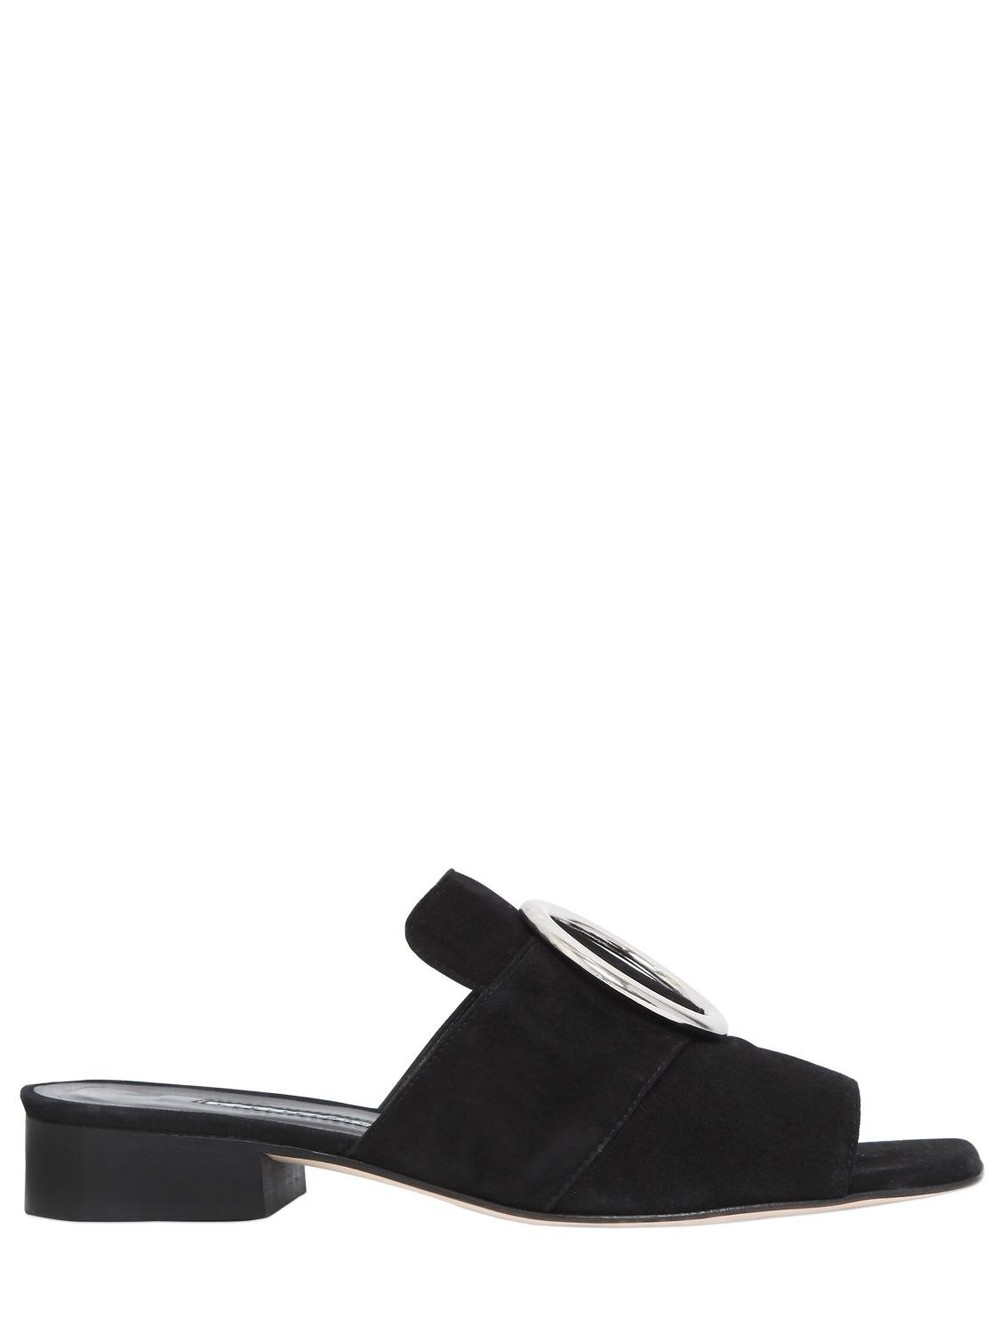 DORATEYMUR 25mm Harput Suede Slide Sandals in black